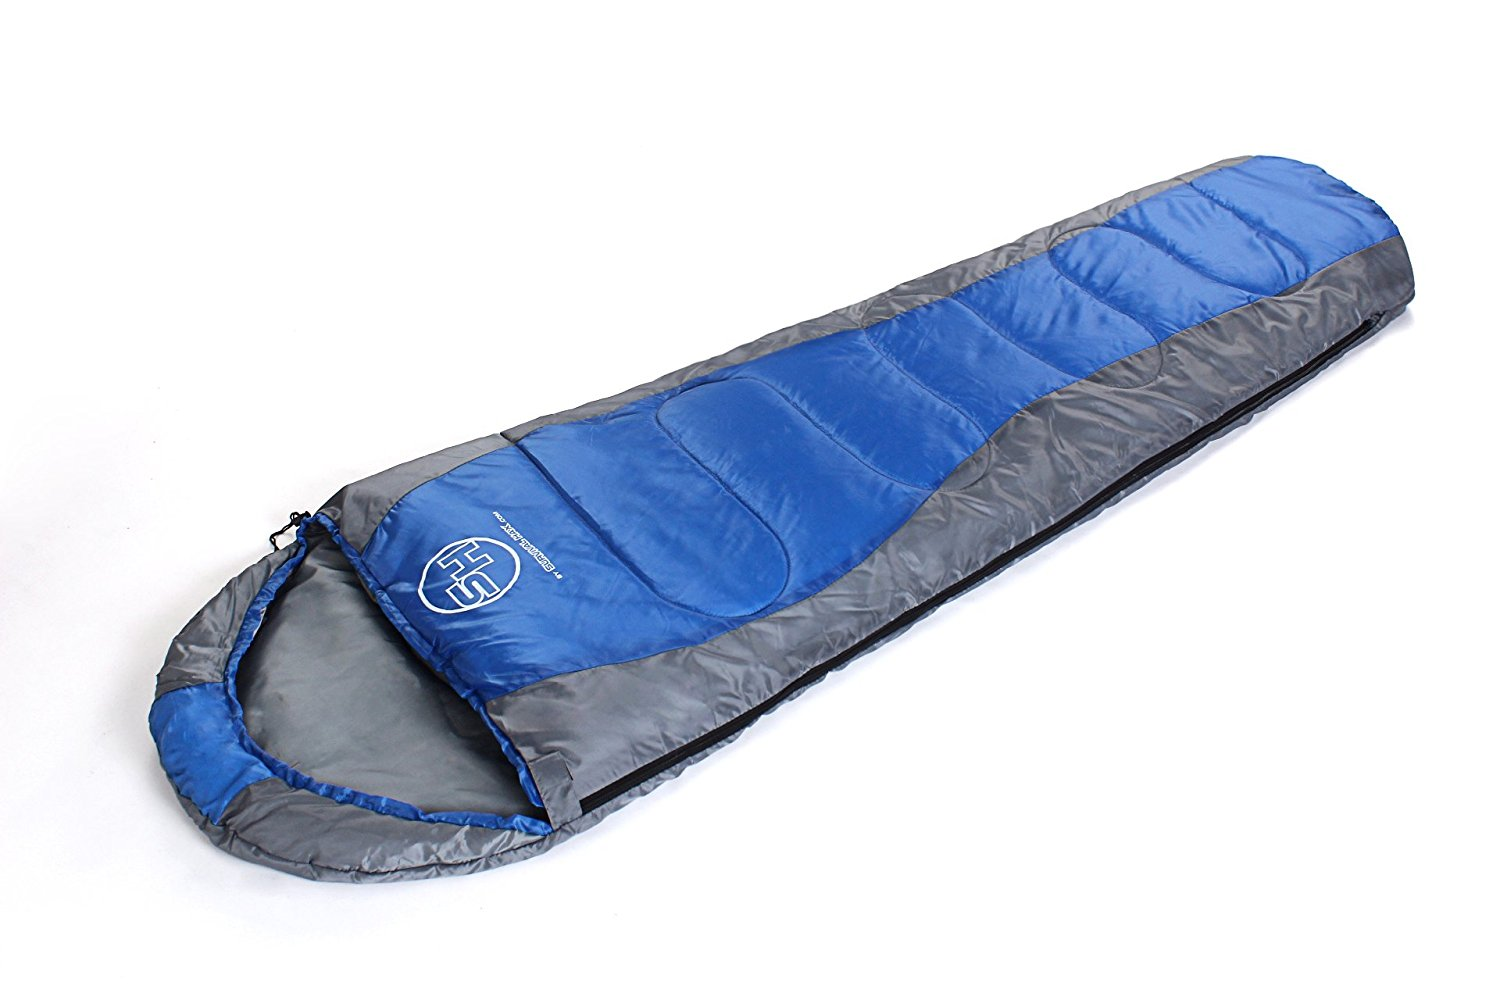 This Sleeping Bag wont give up on you even if you do.